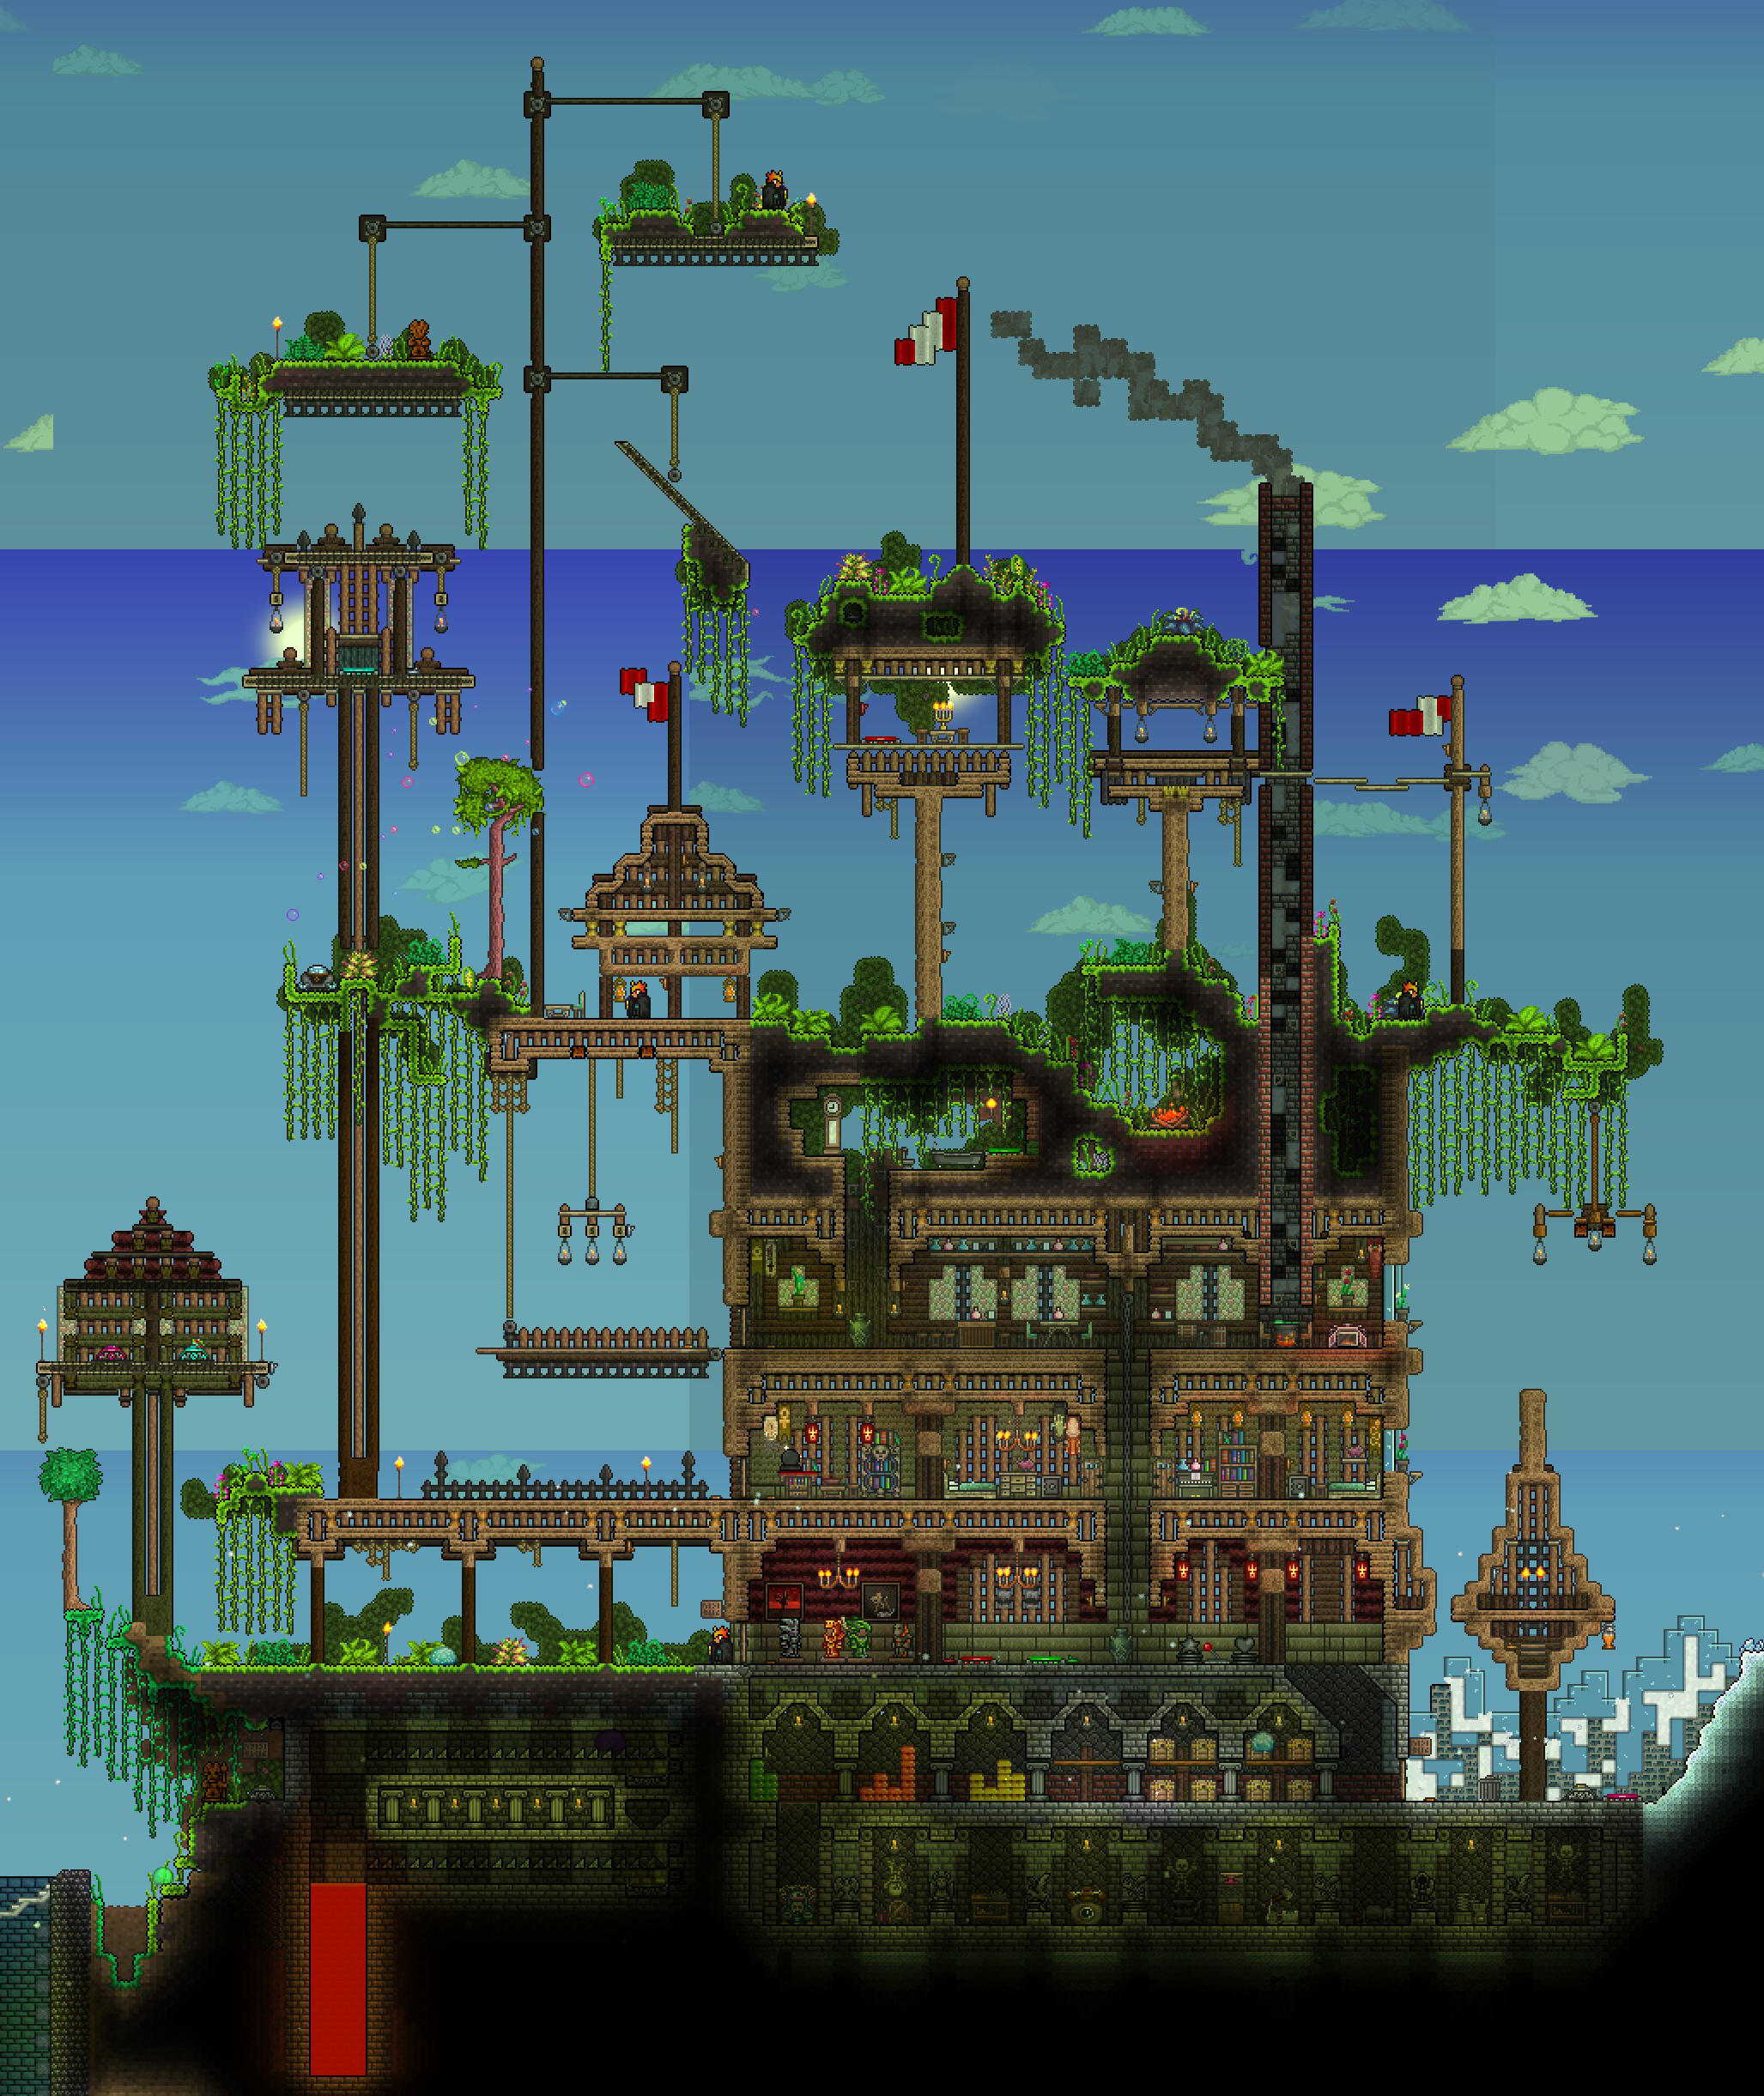 Pin By Rhyan Wachal On Terraria House Ideas To Build